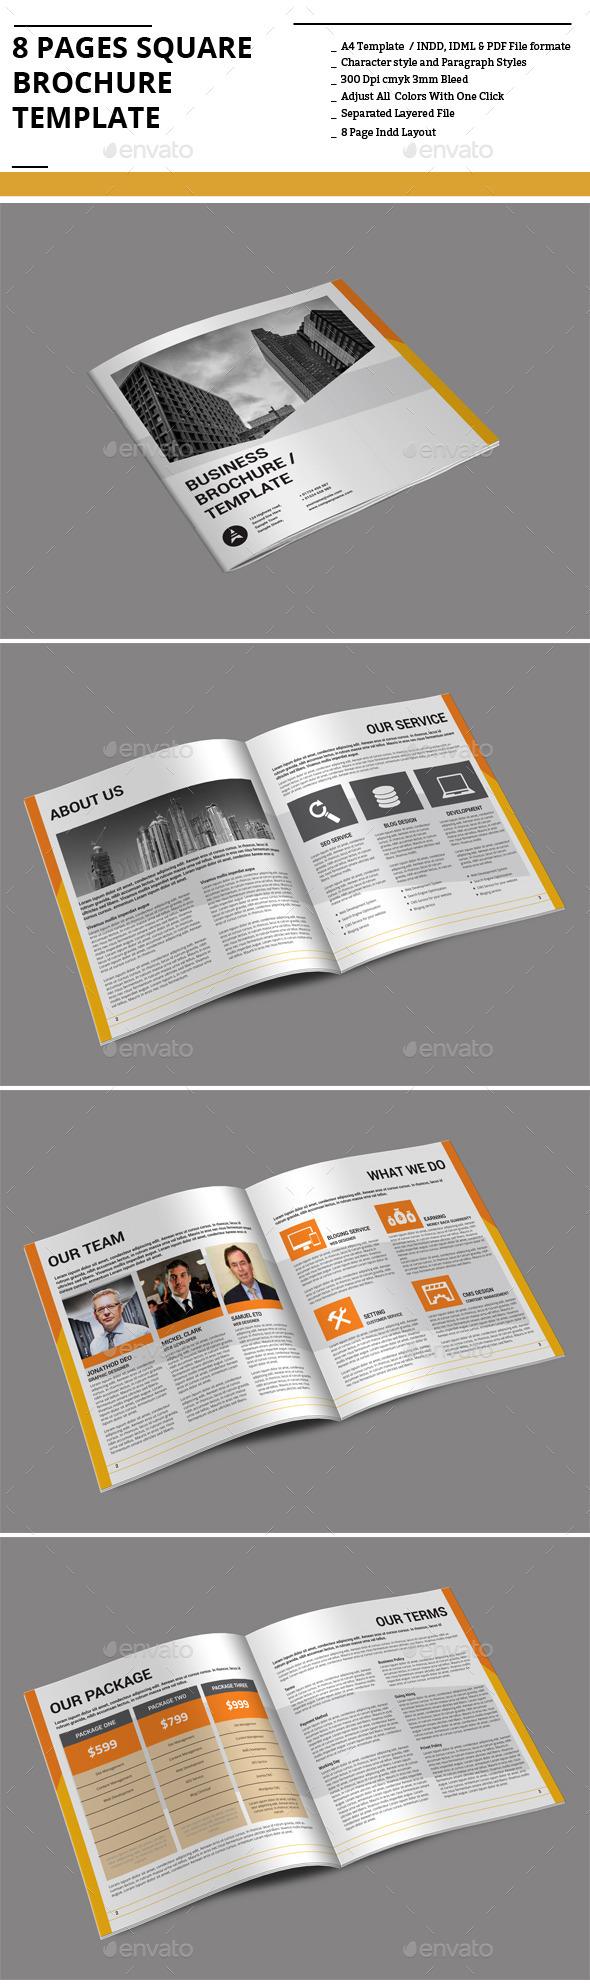 GraphicRiver 8 Pages Square Brochure Template 9167784